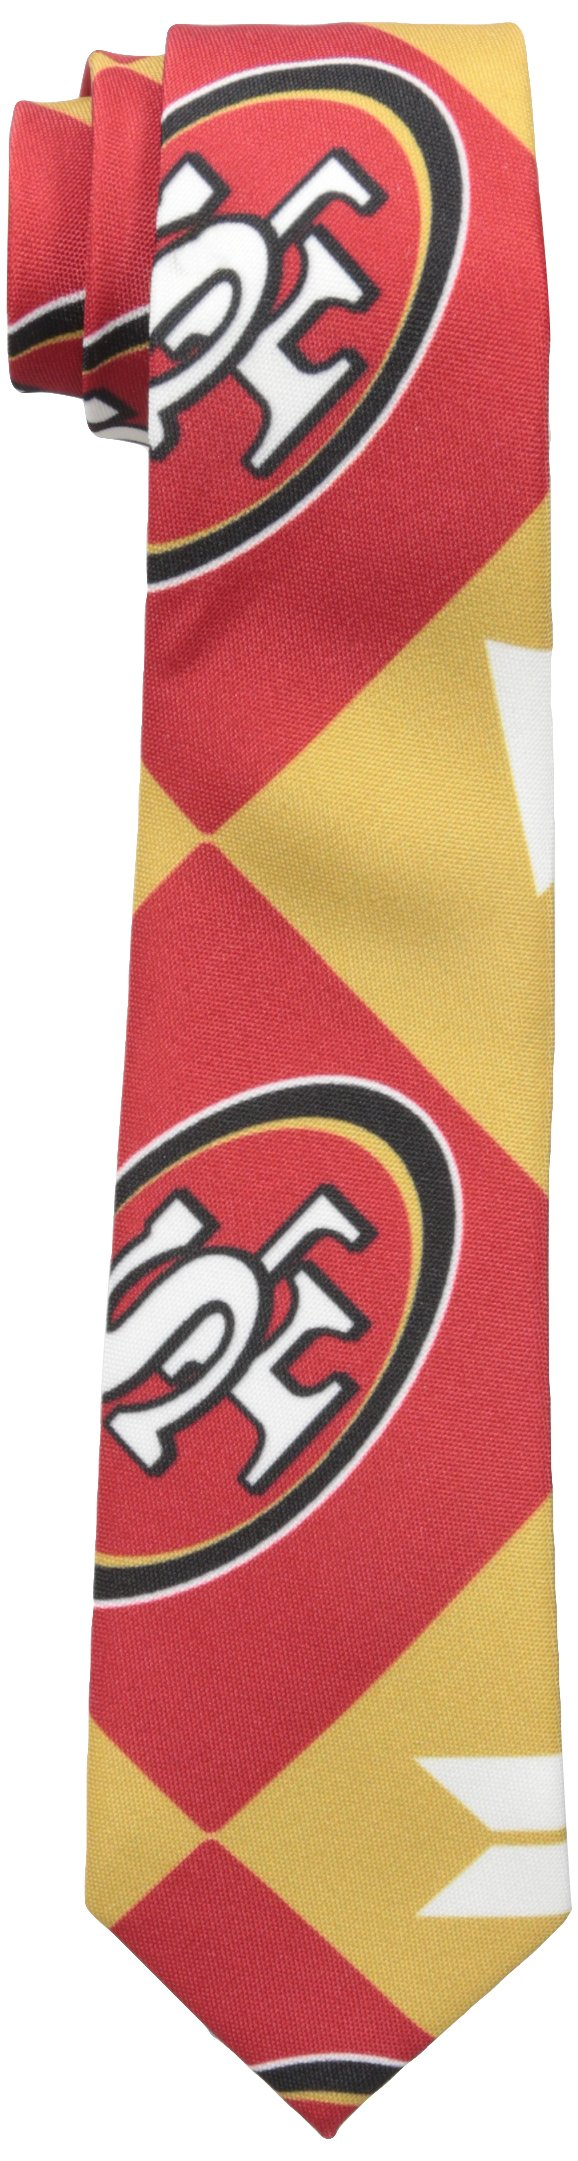 FOCO San Francisco 49ers Patches Ugly Printed Tie - Mens